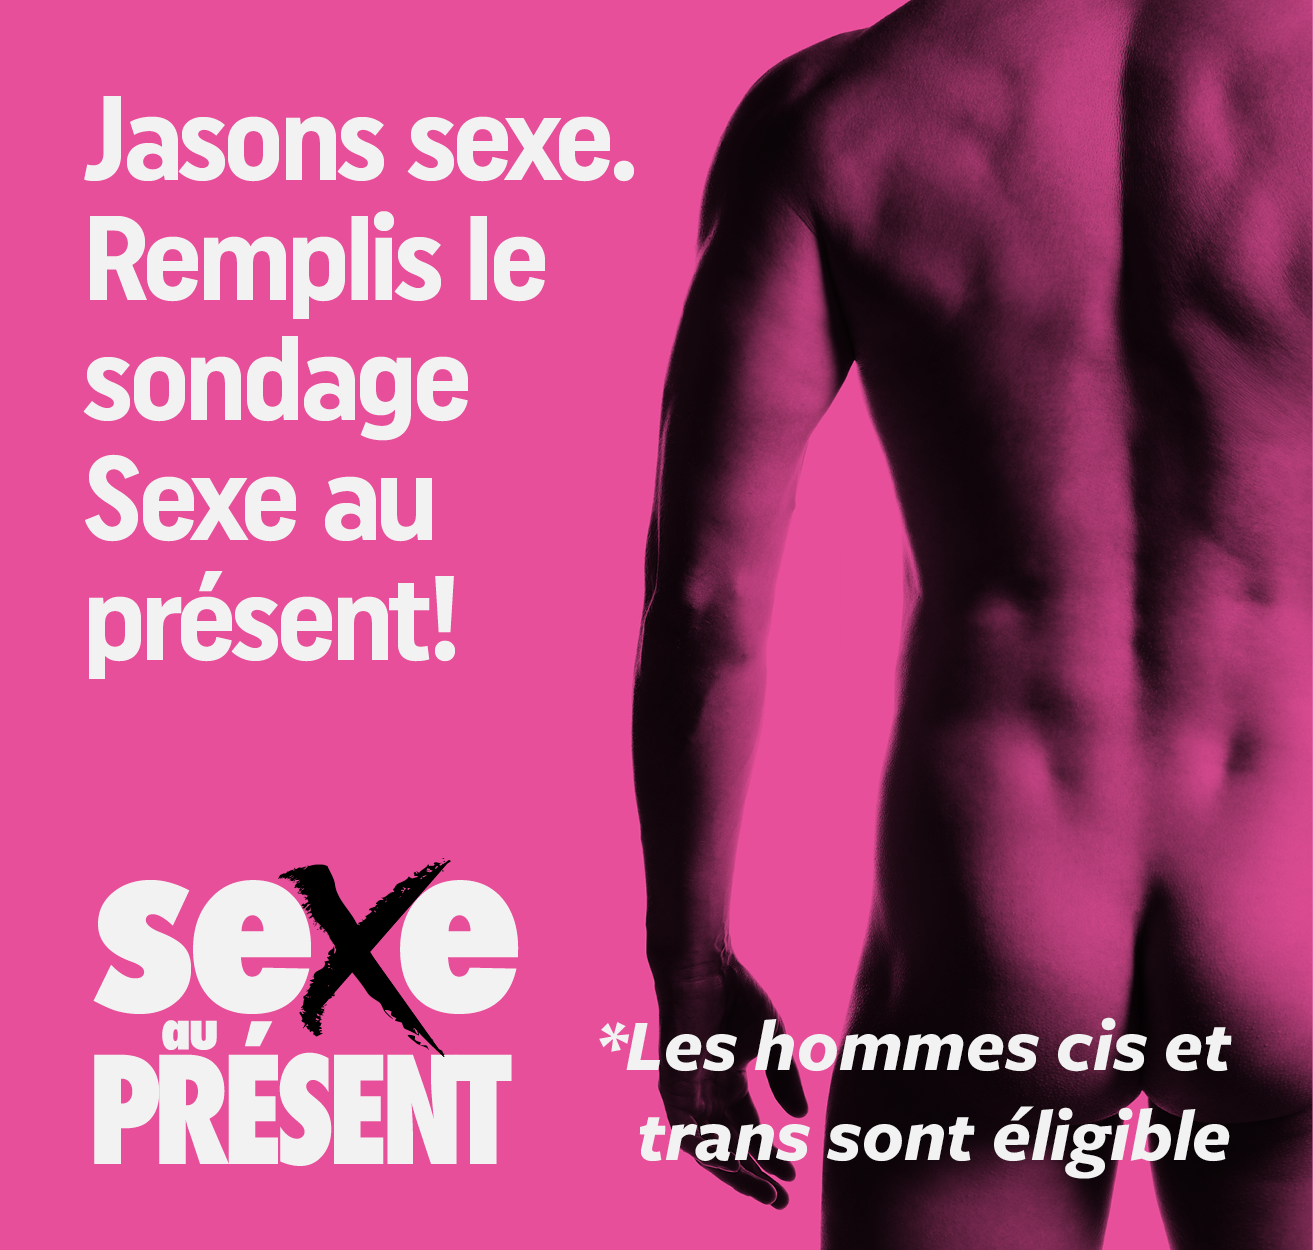 SexNow_JasonsSexe.png